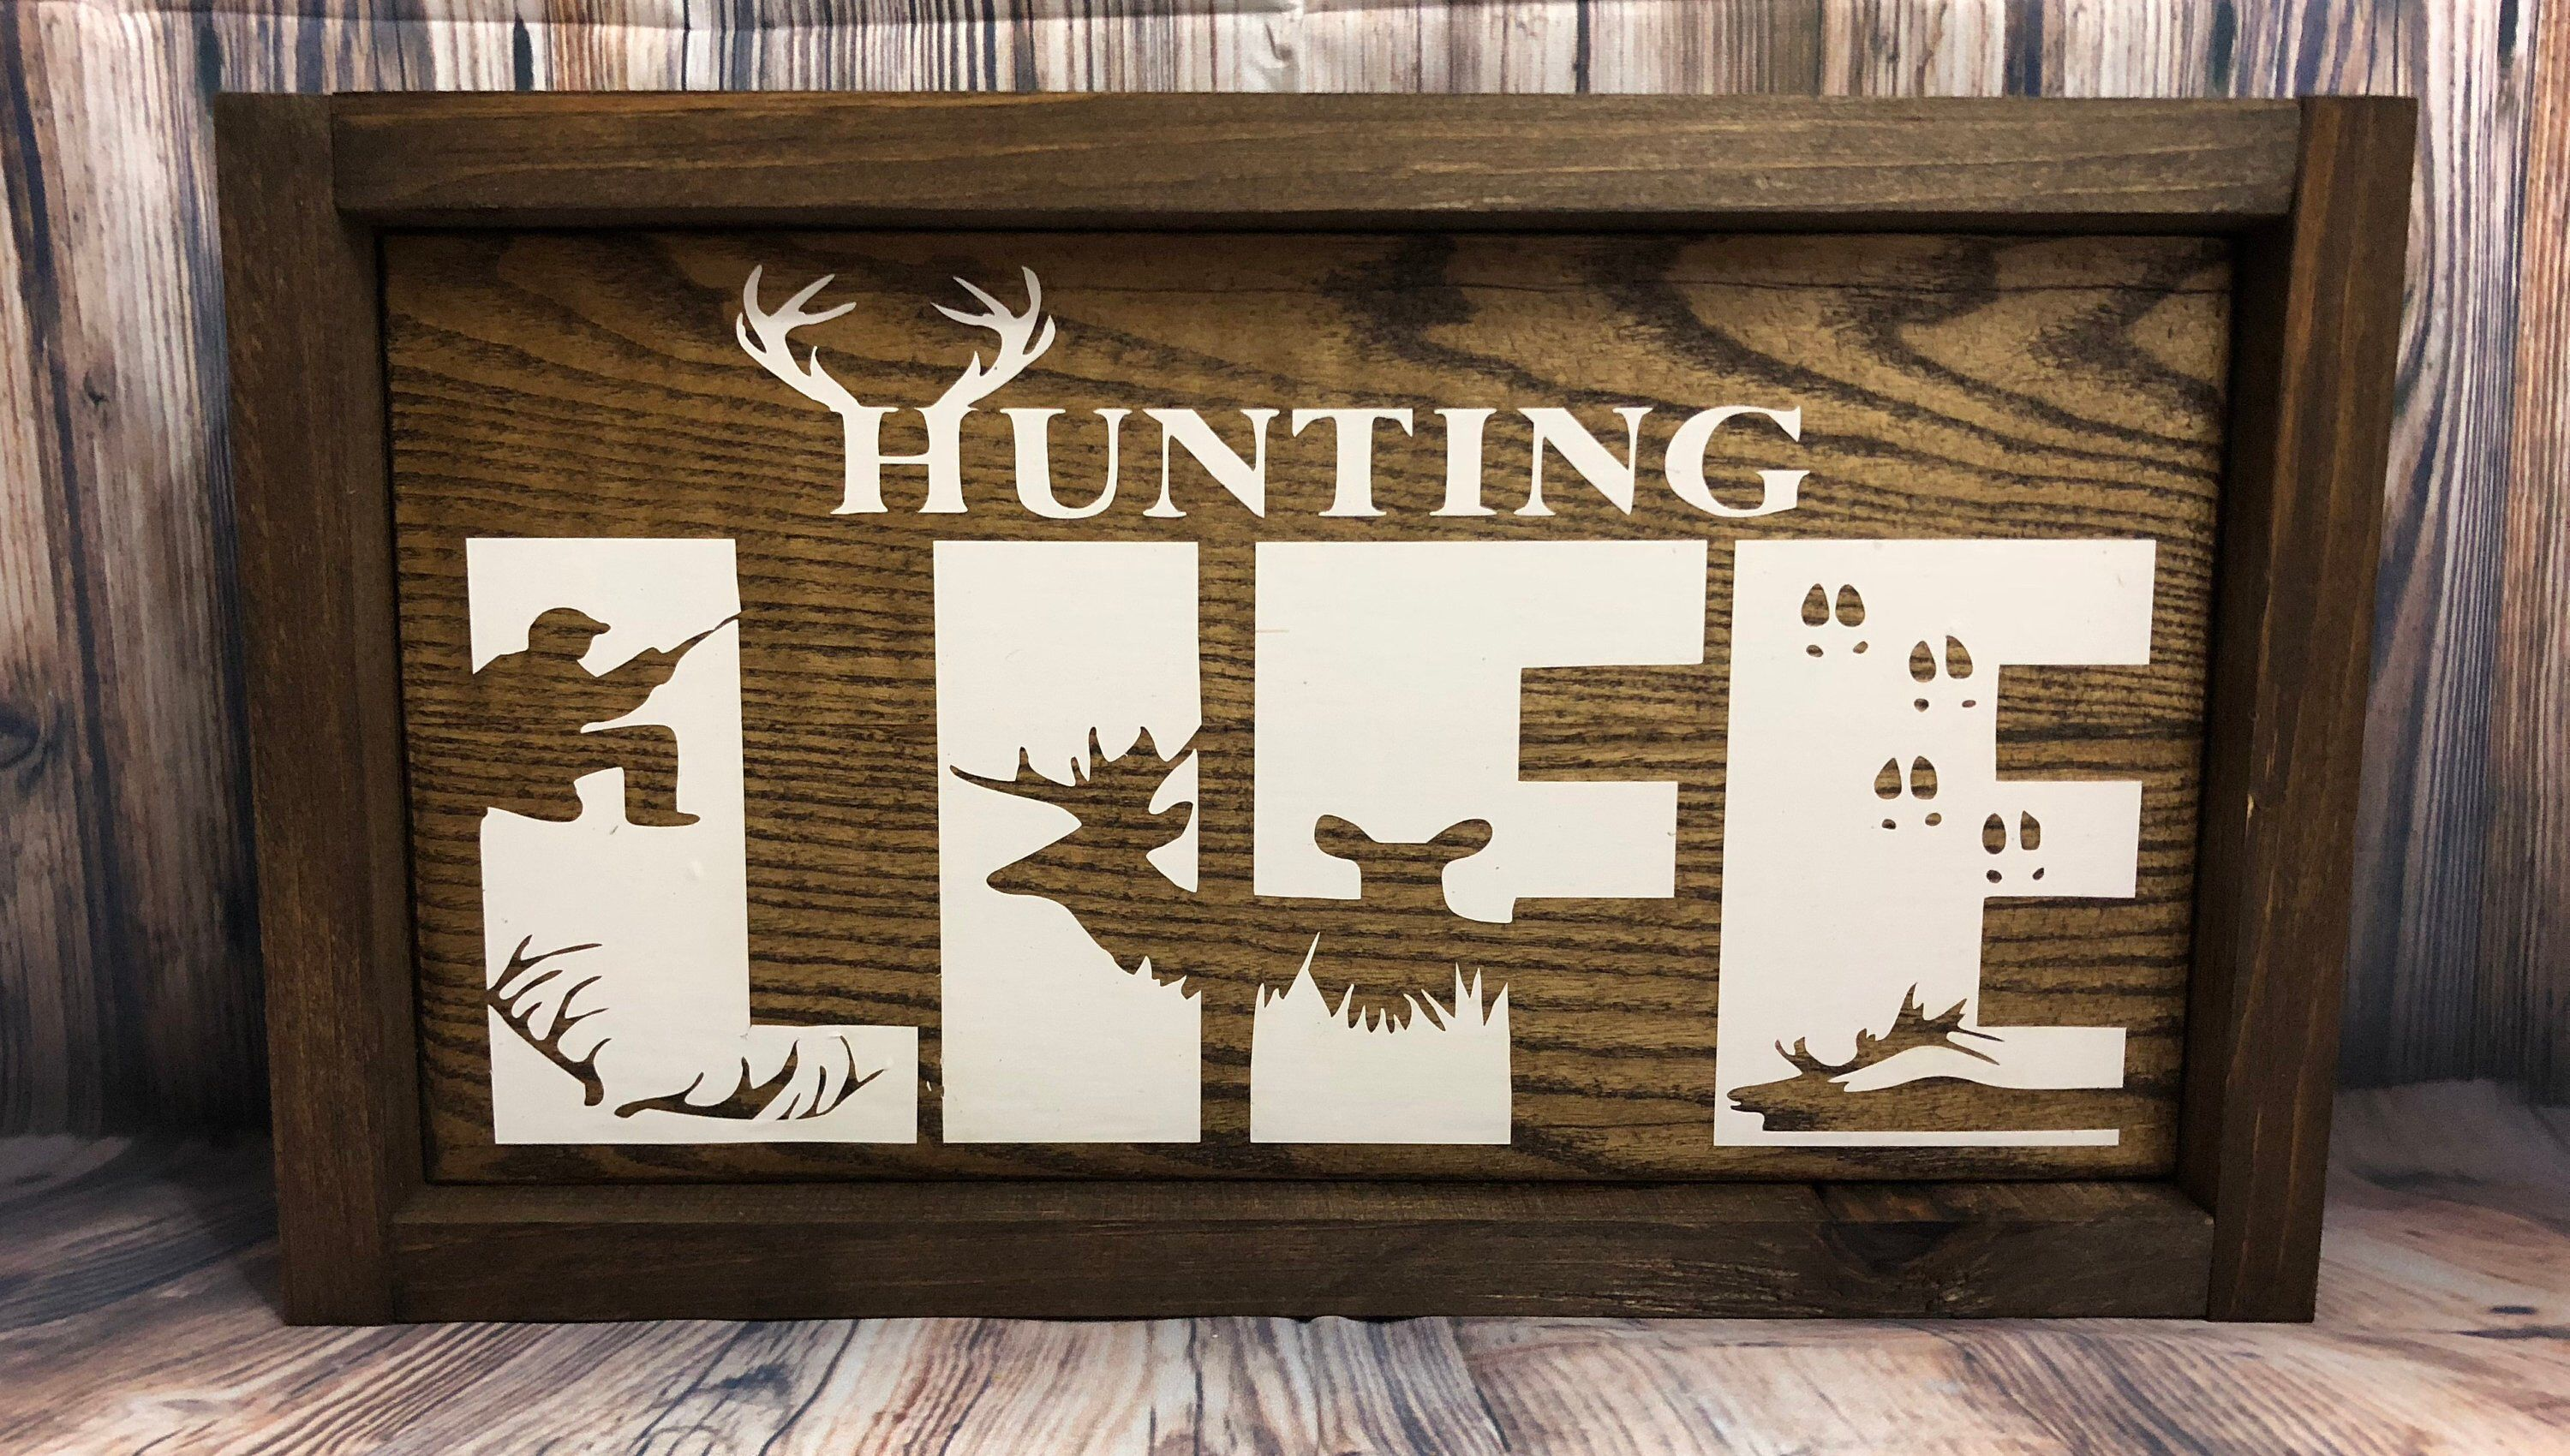 Hunting Life | life of a Hunter | camp Sign | man cave sign | homemade | made to order |hand crafted